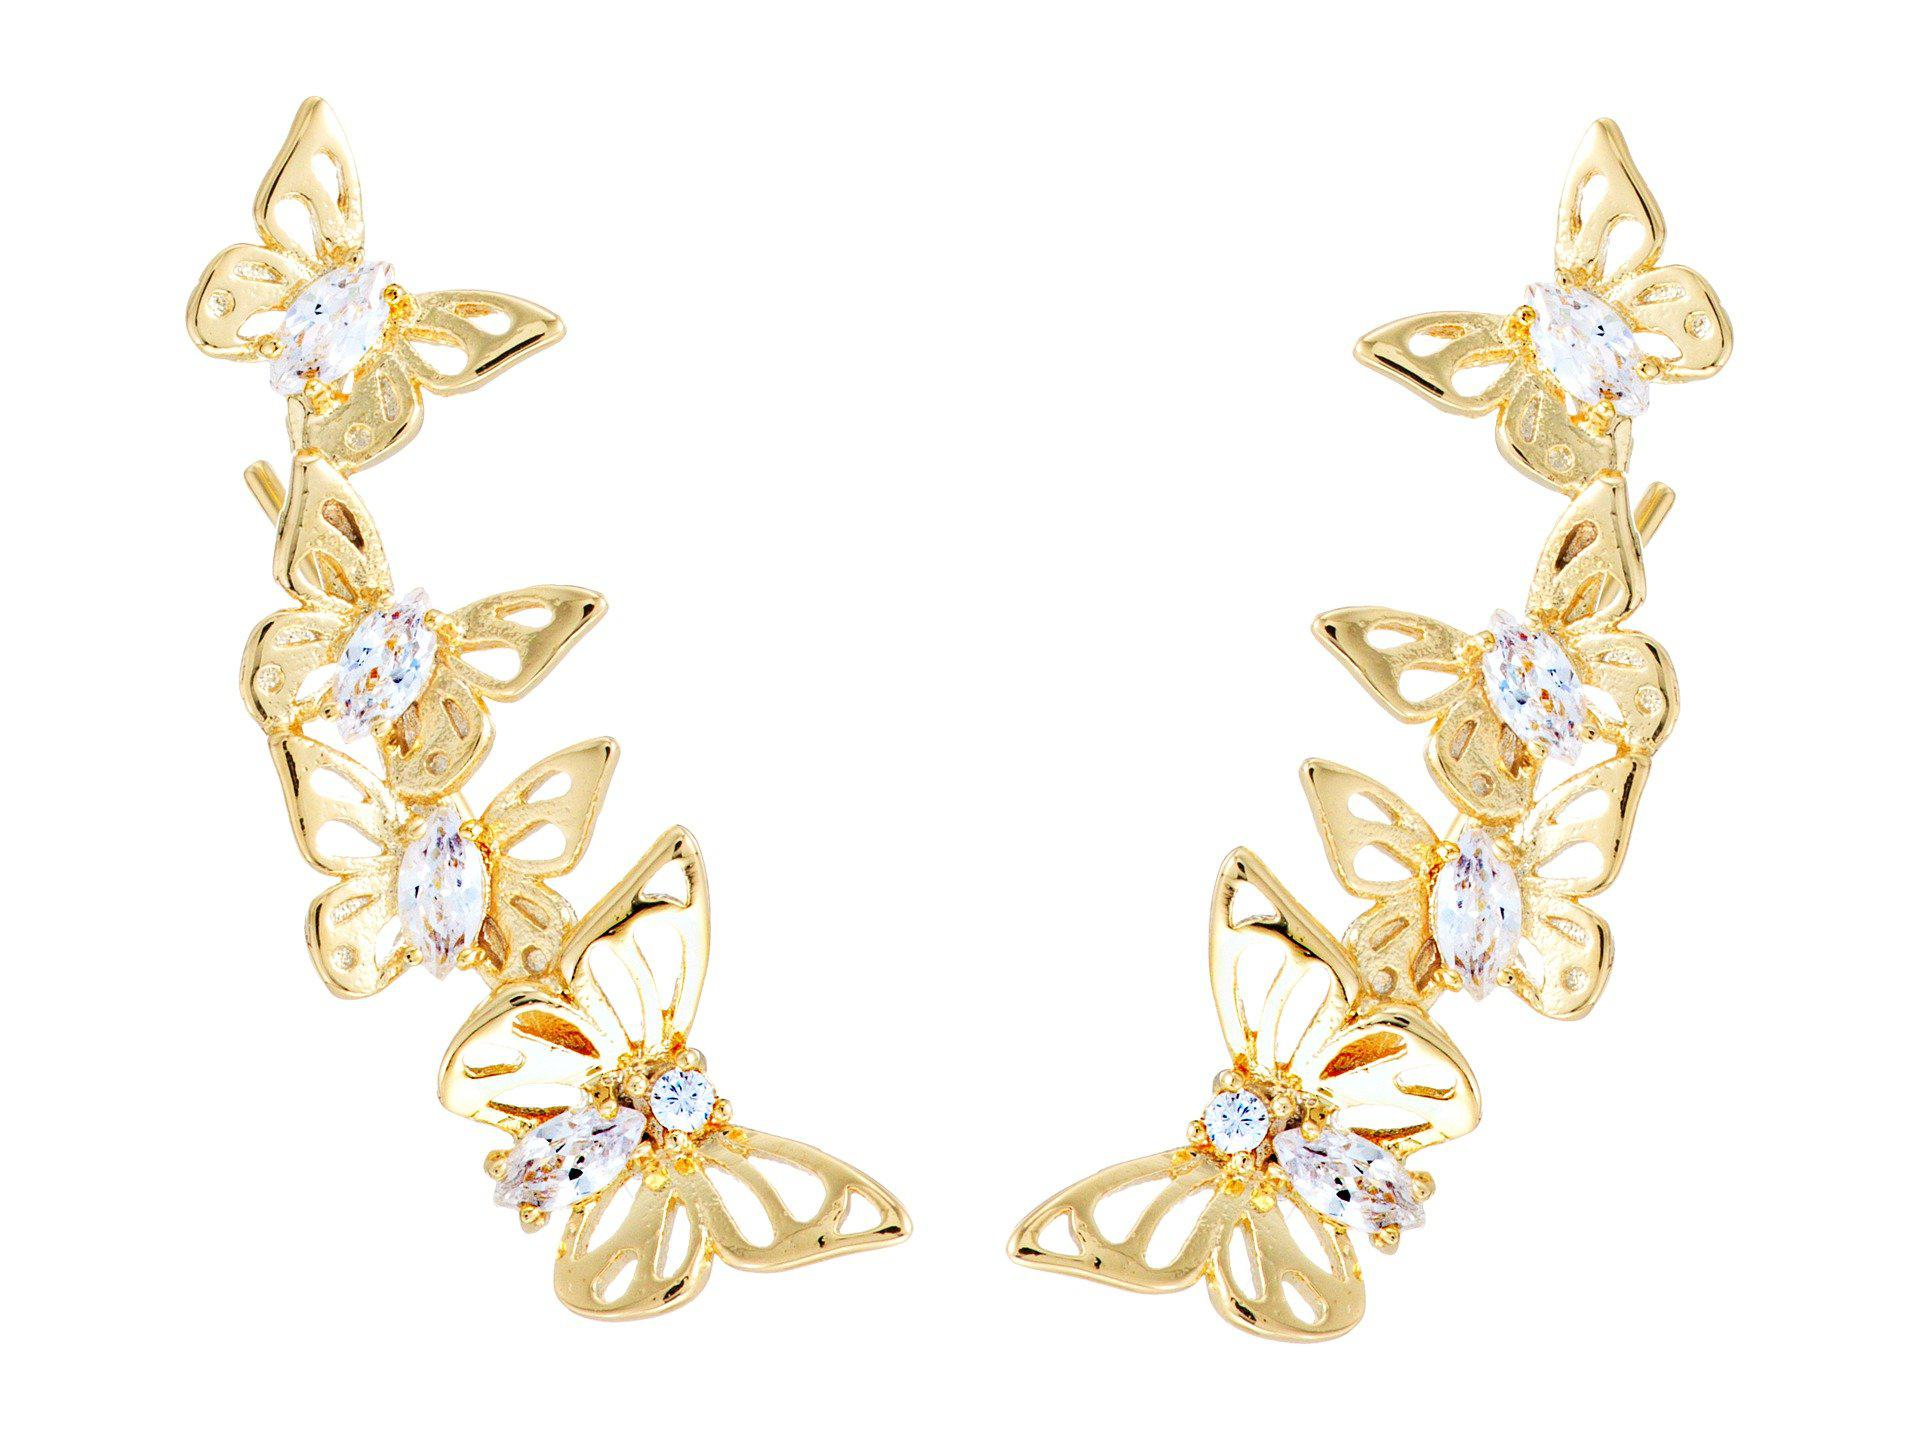 dd2dc1262513f Kate Spade Social Butterfly Ear Pin Earrings in Metallic - Lyst